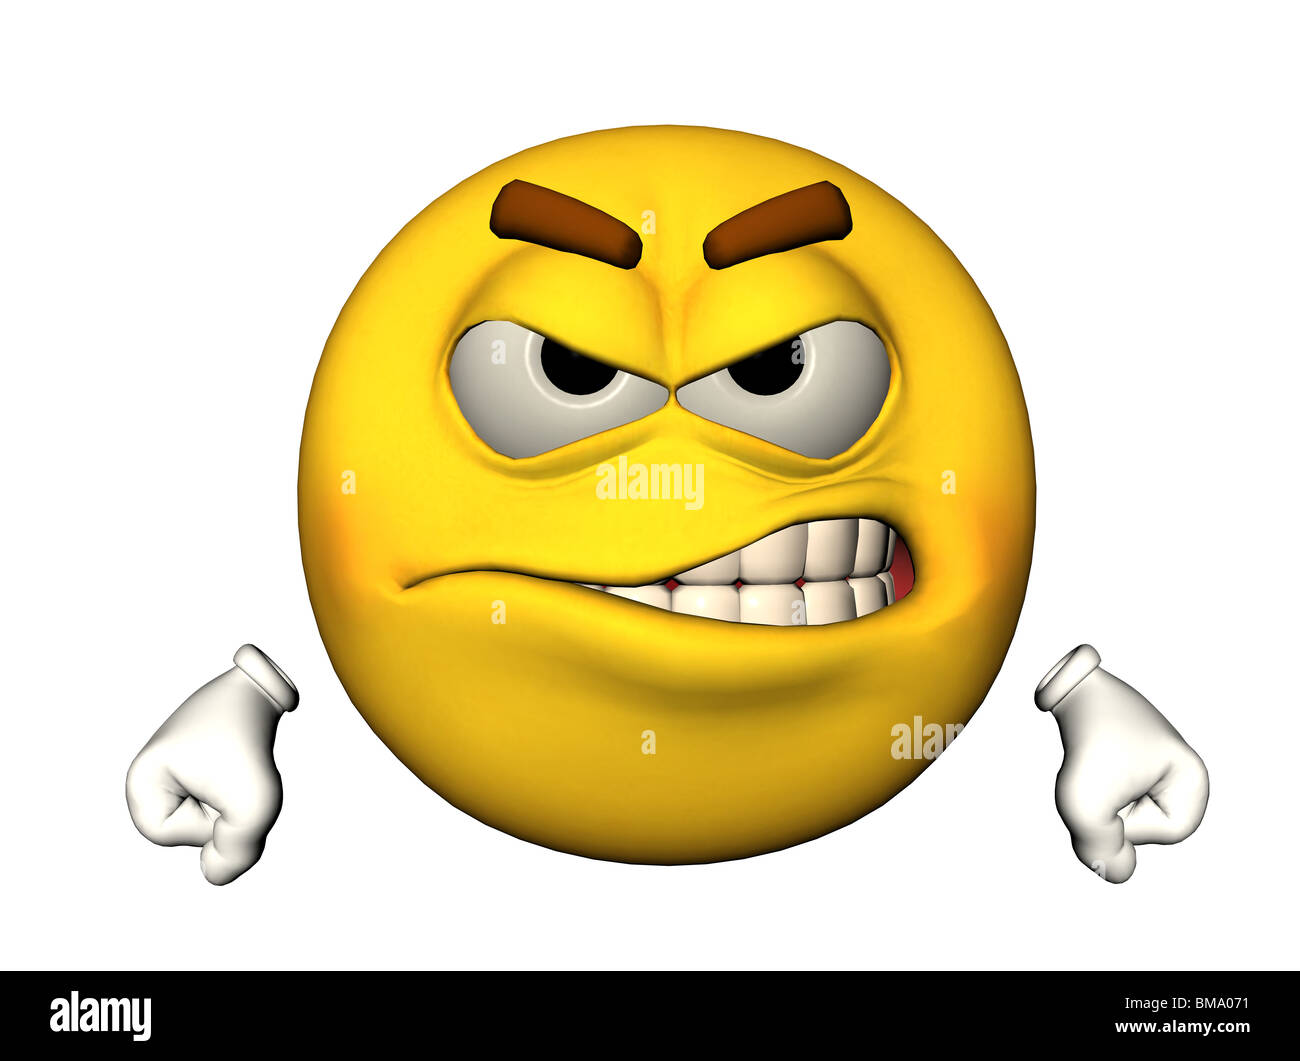 3D illustration of an angry emoticon - Stock Image